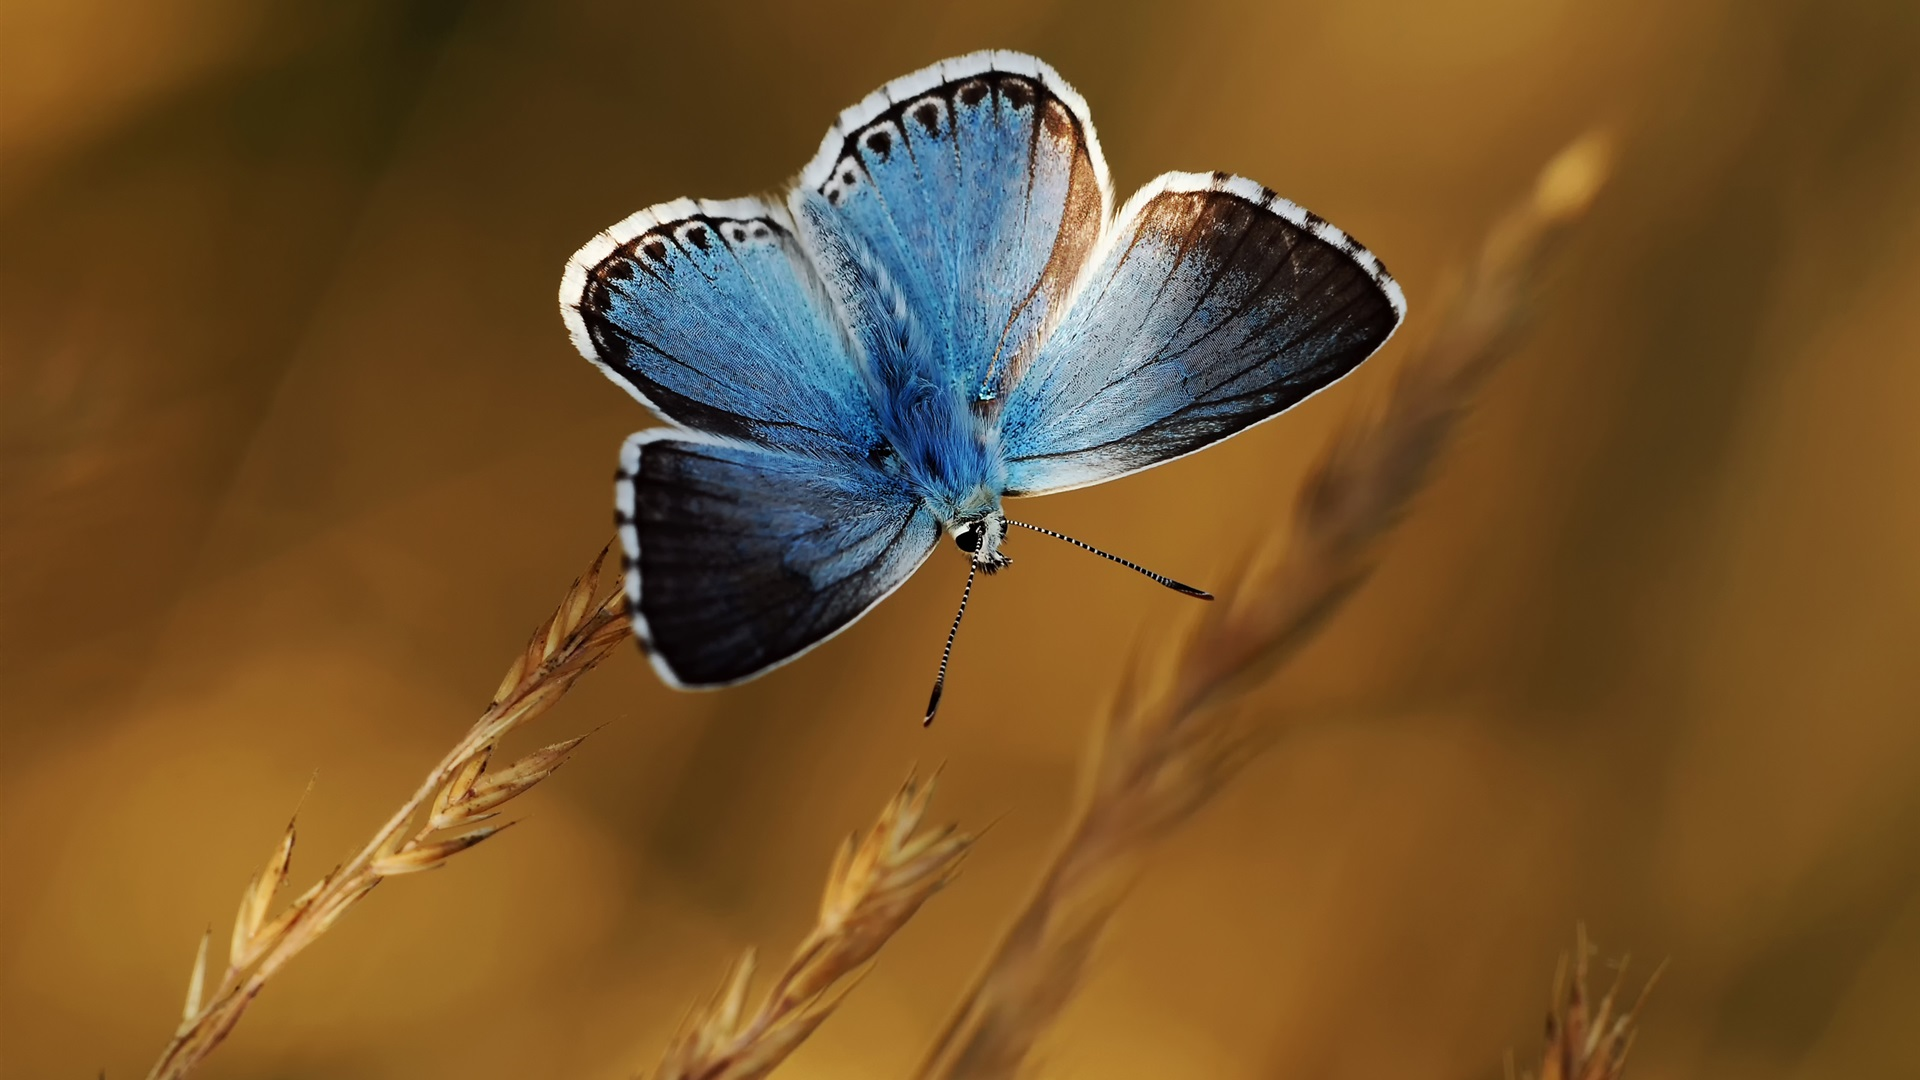 blue butterflies liliesjpg - photo #2